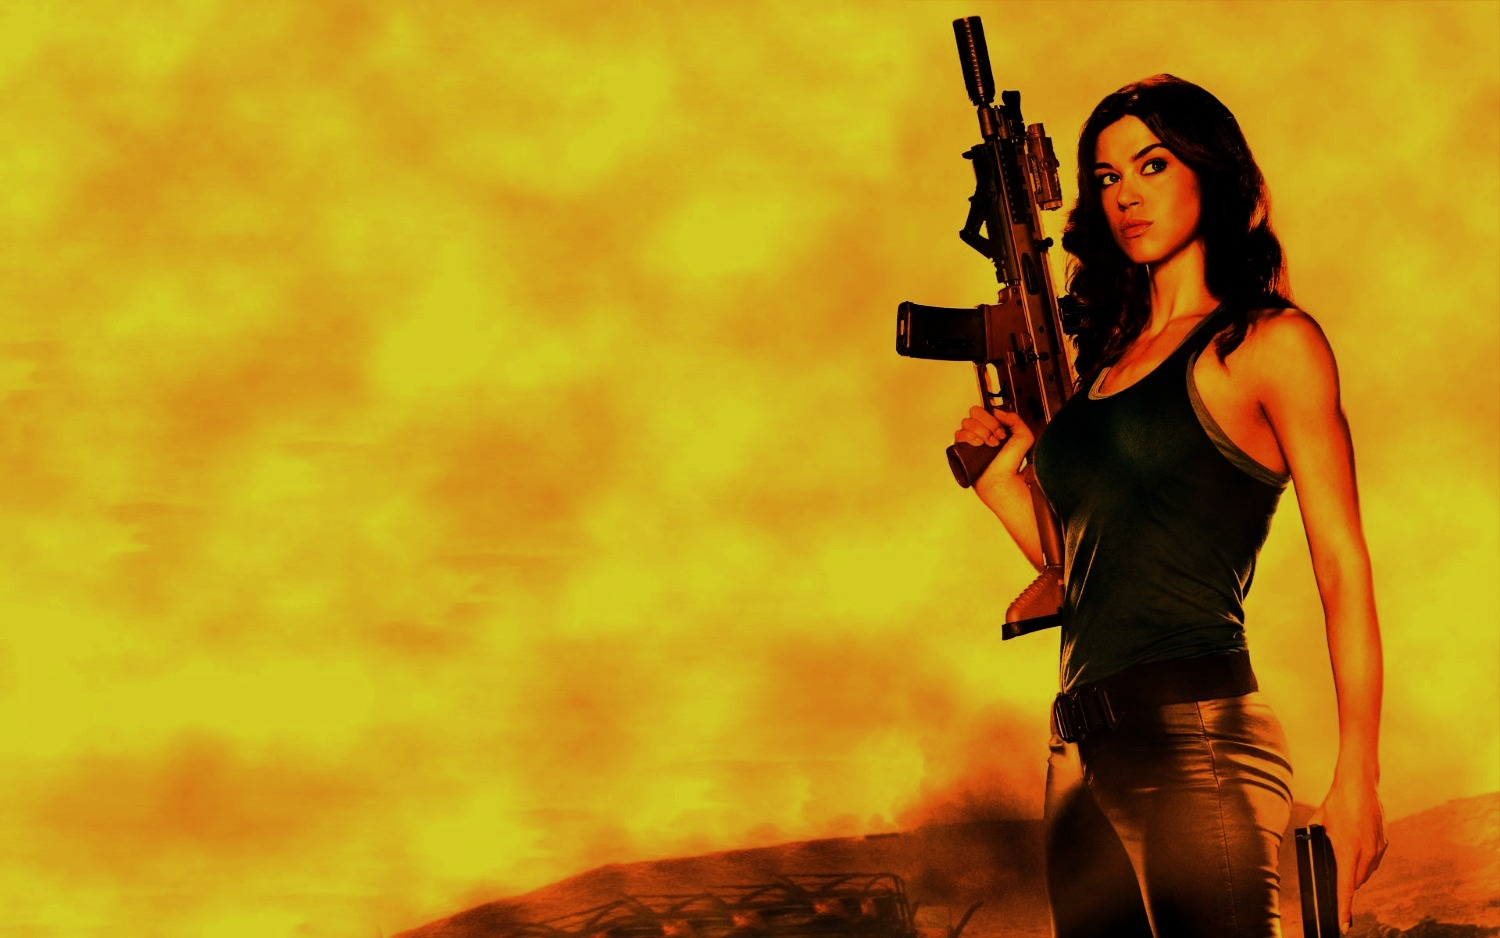 girls-with-guns-hd-wallpapers-11_edited_edited